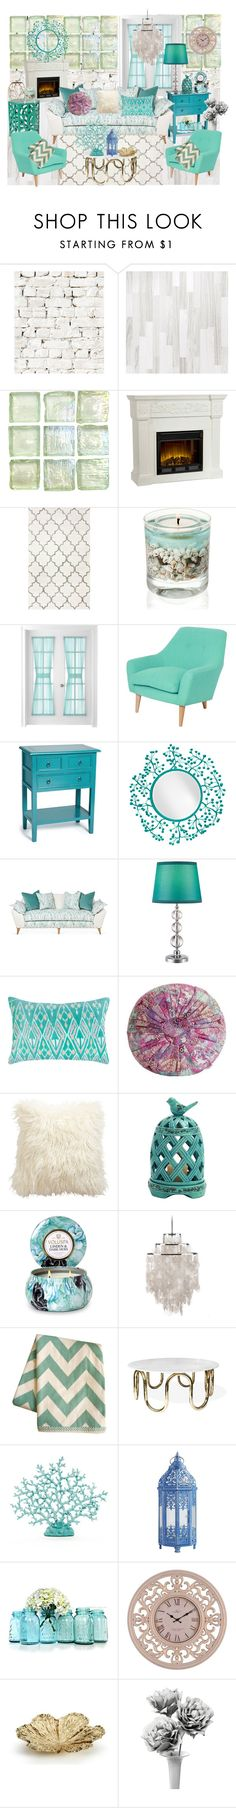 """""""turquoise decor"""" by vanilaicecream ❤ liked on Polyvore featuring interior, interiors, interior design, home, home decor, interior decorating, Milton & King, Southern Enterprises, Mix & Match and Satara"""